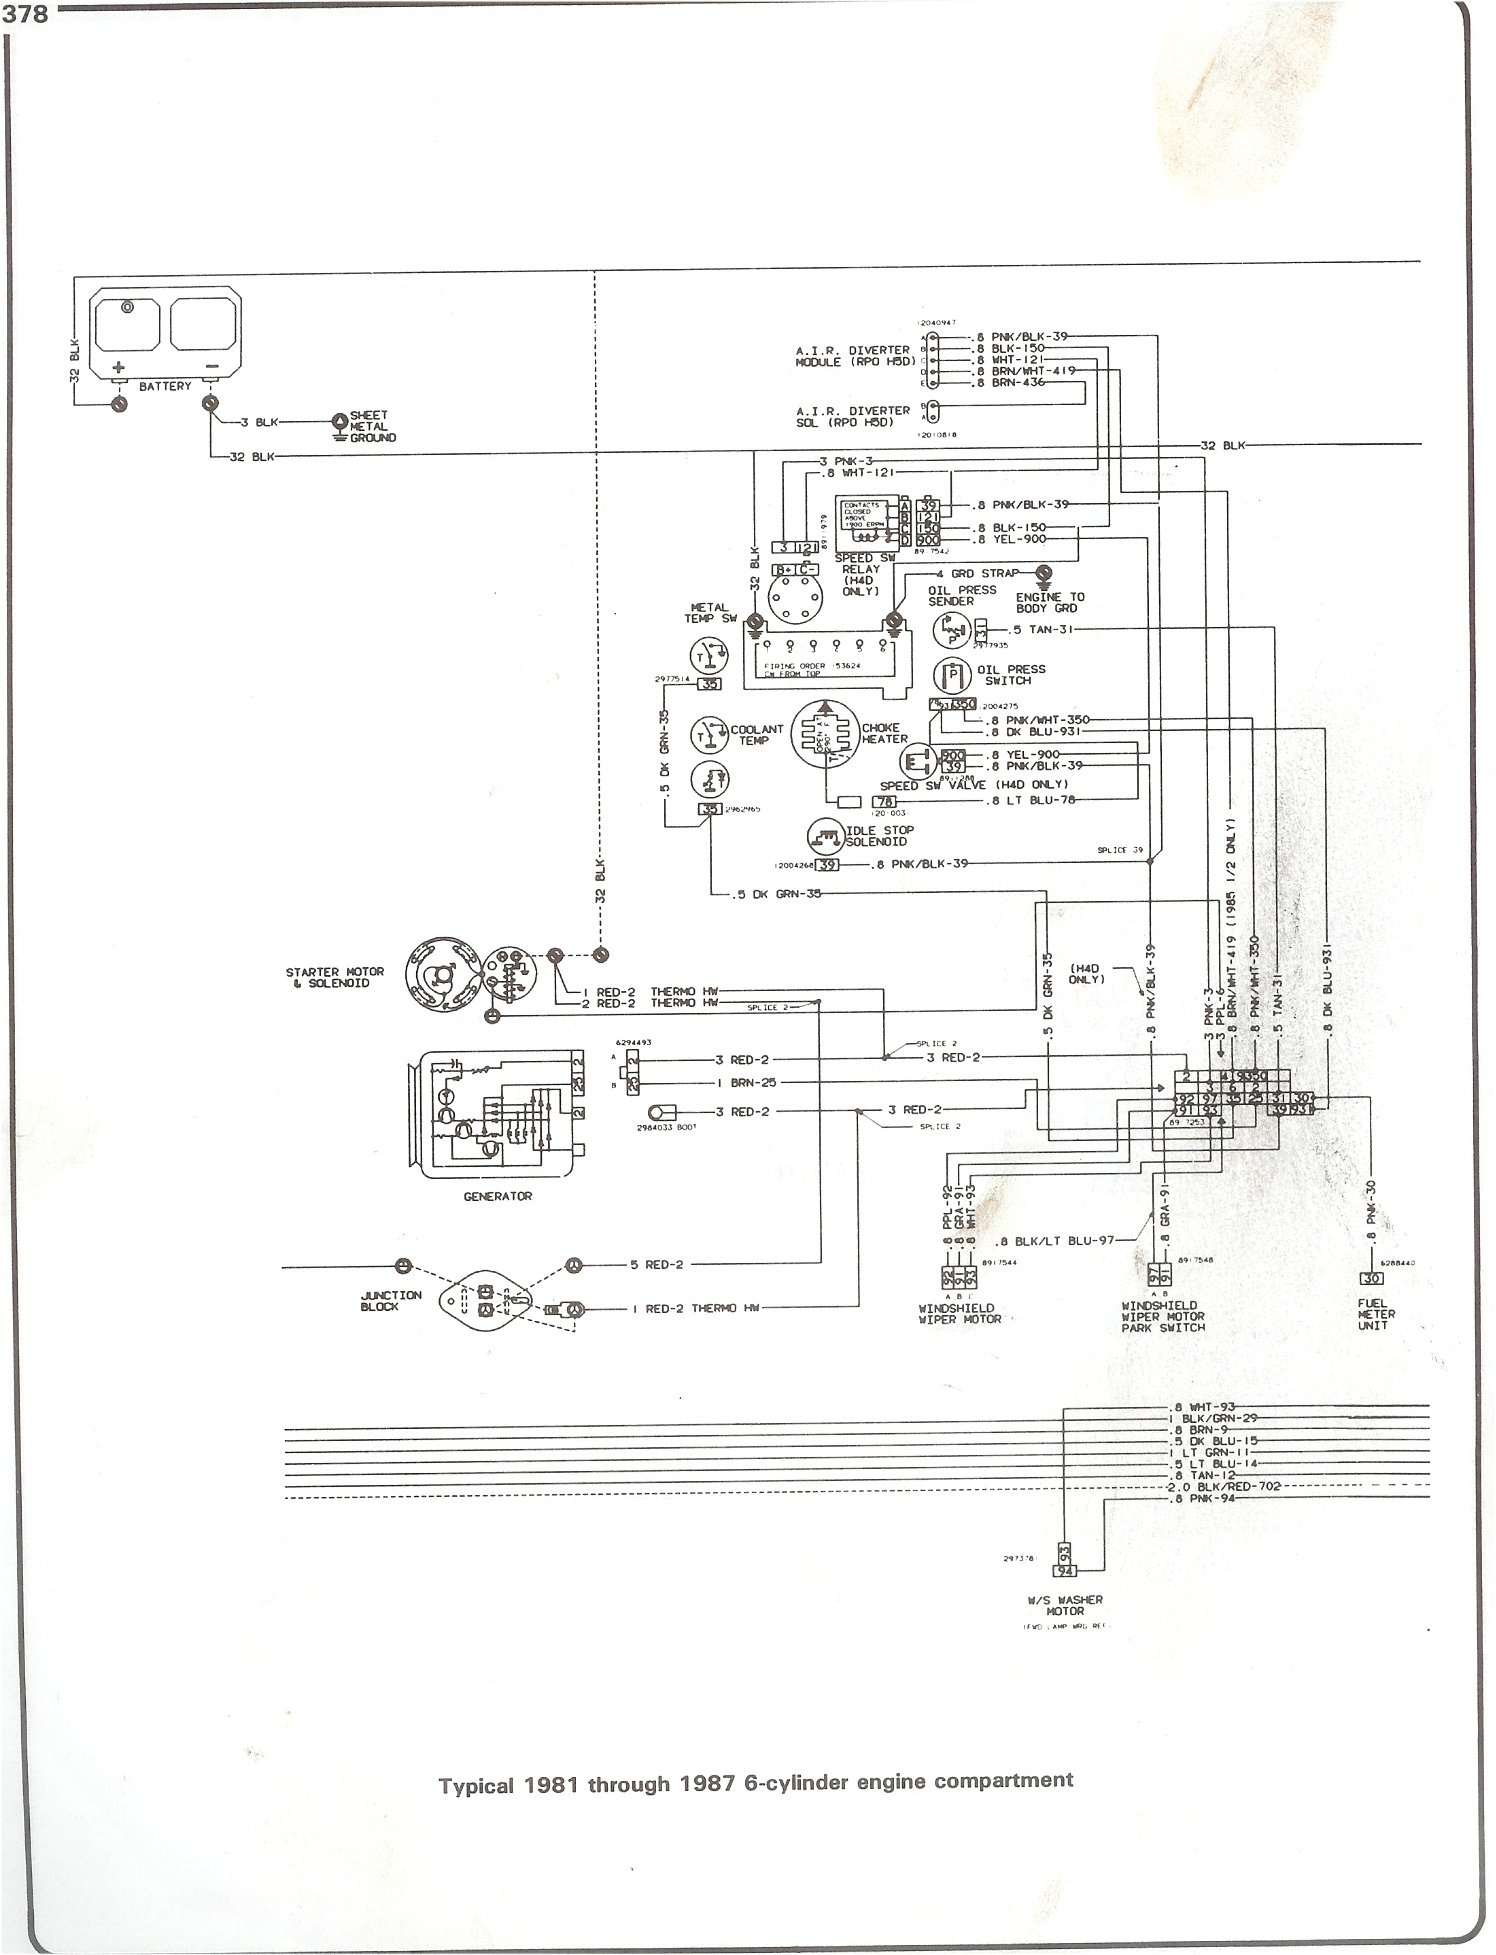 1987 Chevy Caprice Alternator Wiring Diagram How To Wire A Images Gallery